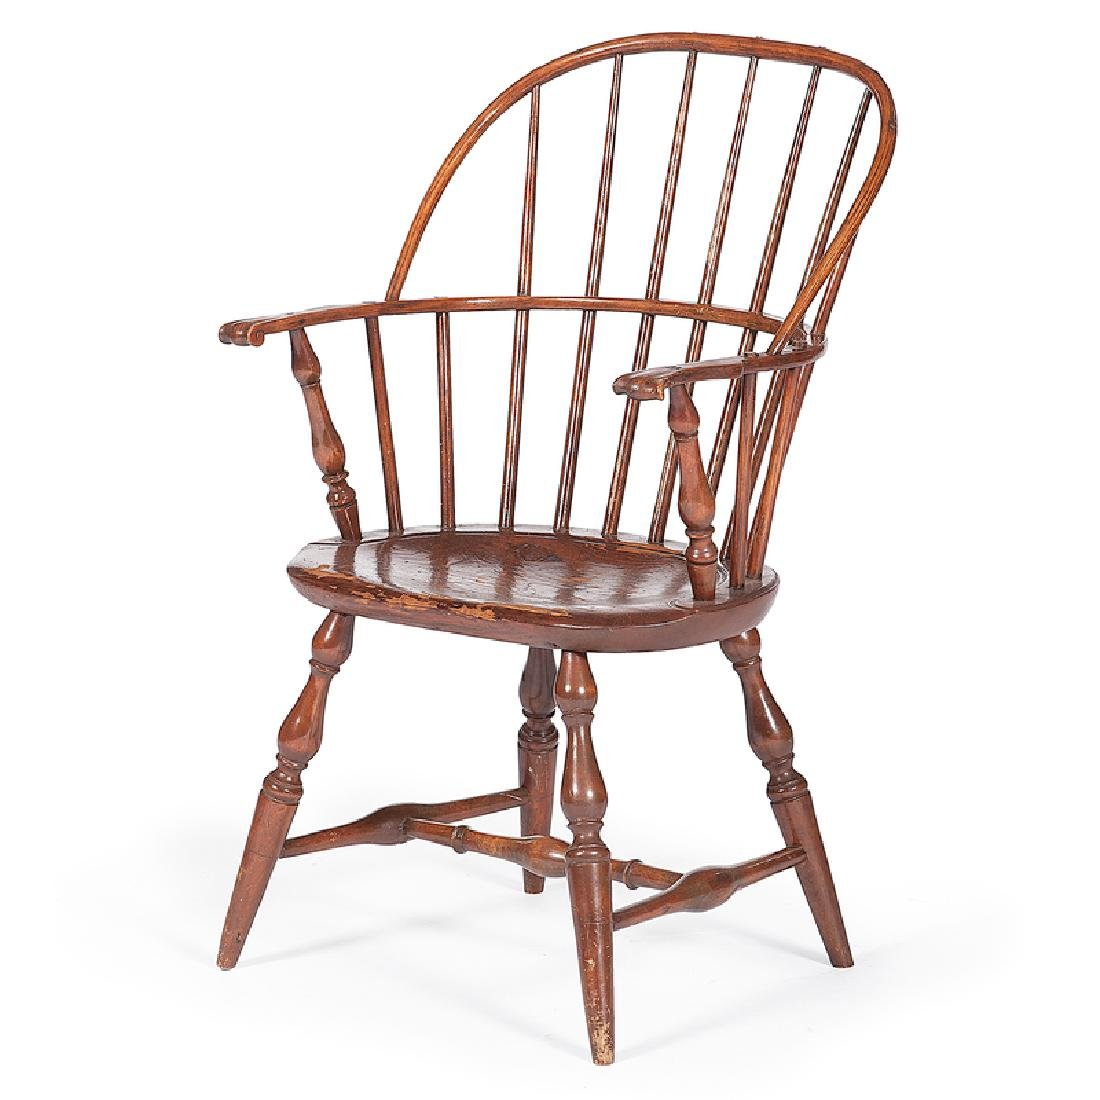 Sack Back Windsor Chair with Knuckle Arms